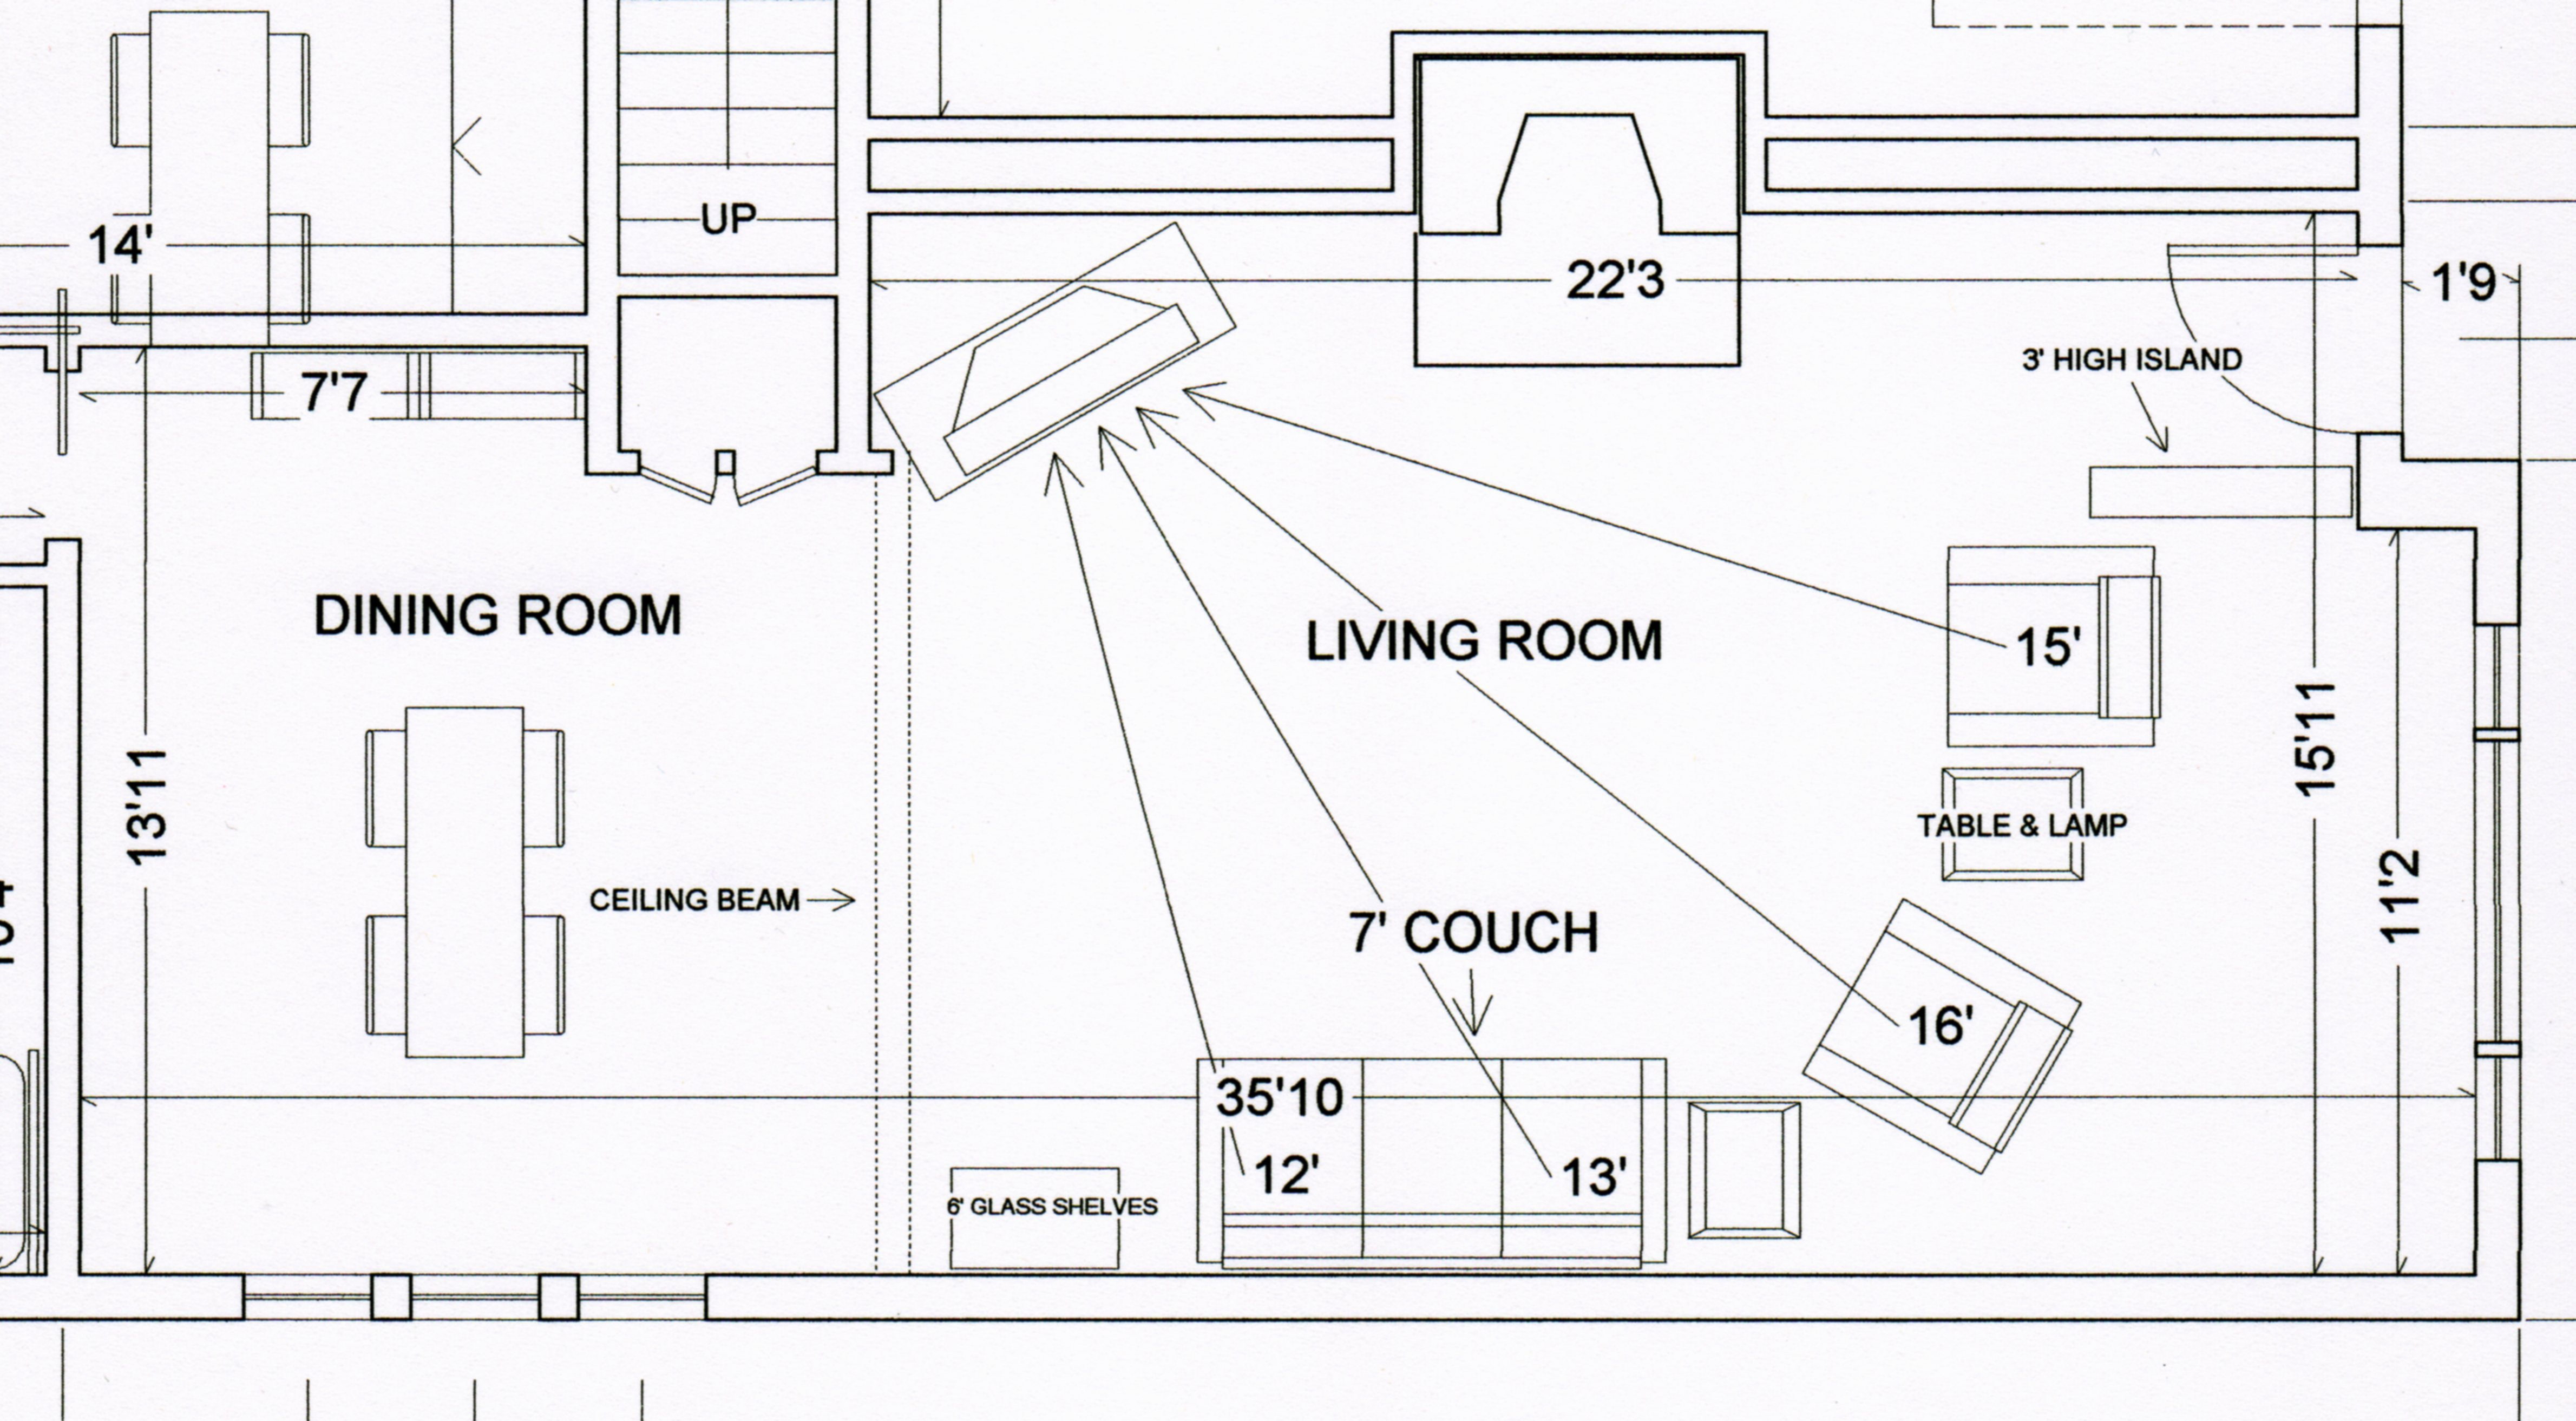 Exceptionnel Looking For Help Setting Up My Speakers.My Living Room Is (24u0027 X 16.5u0027 With  8u0027 Ceilings). If You Look At The Photo There Is Also An Open Area To The  Dining ...